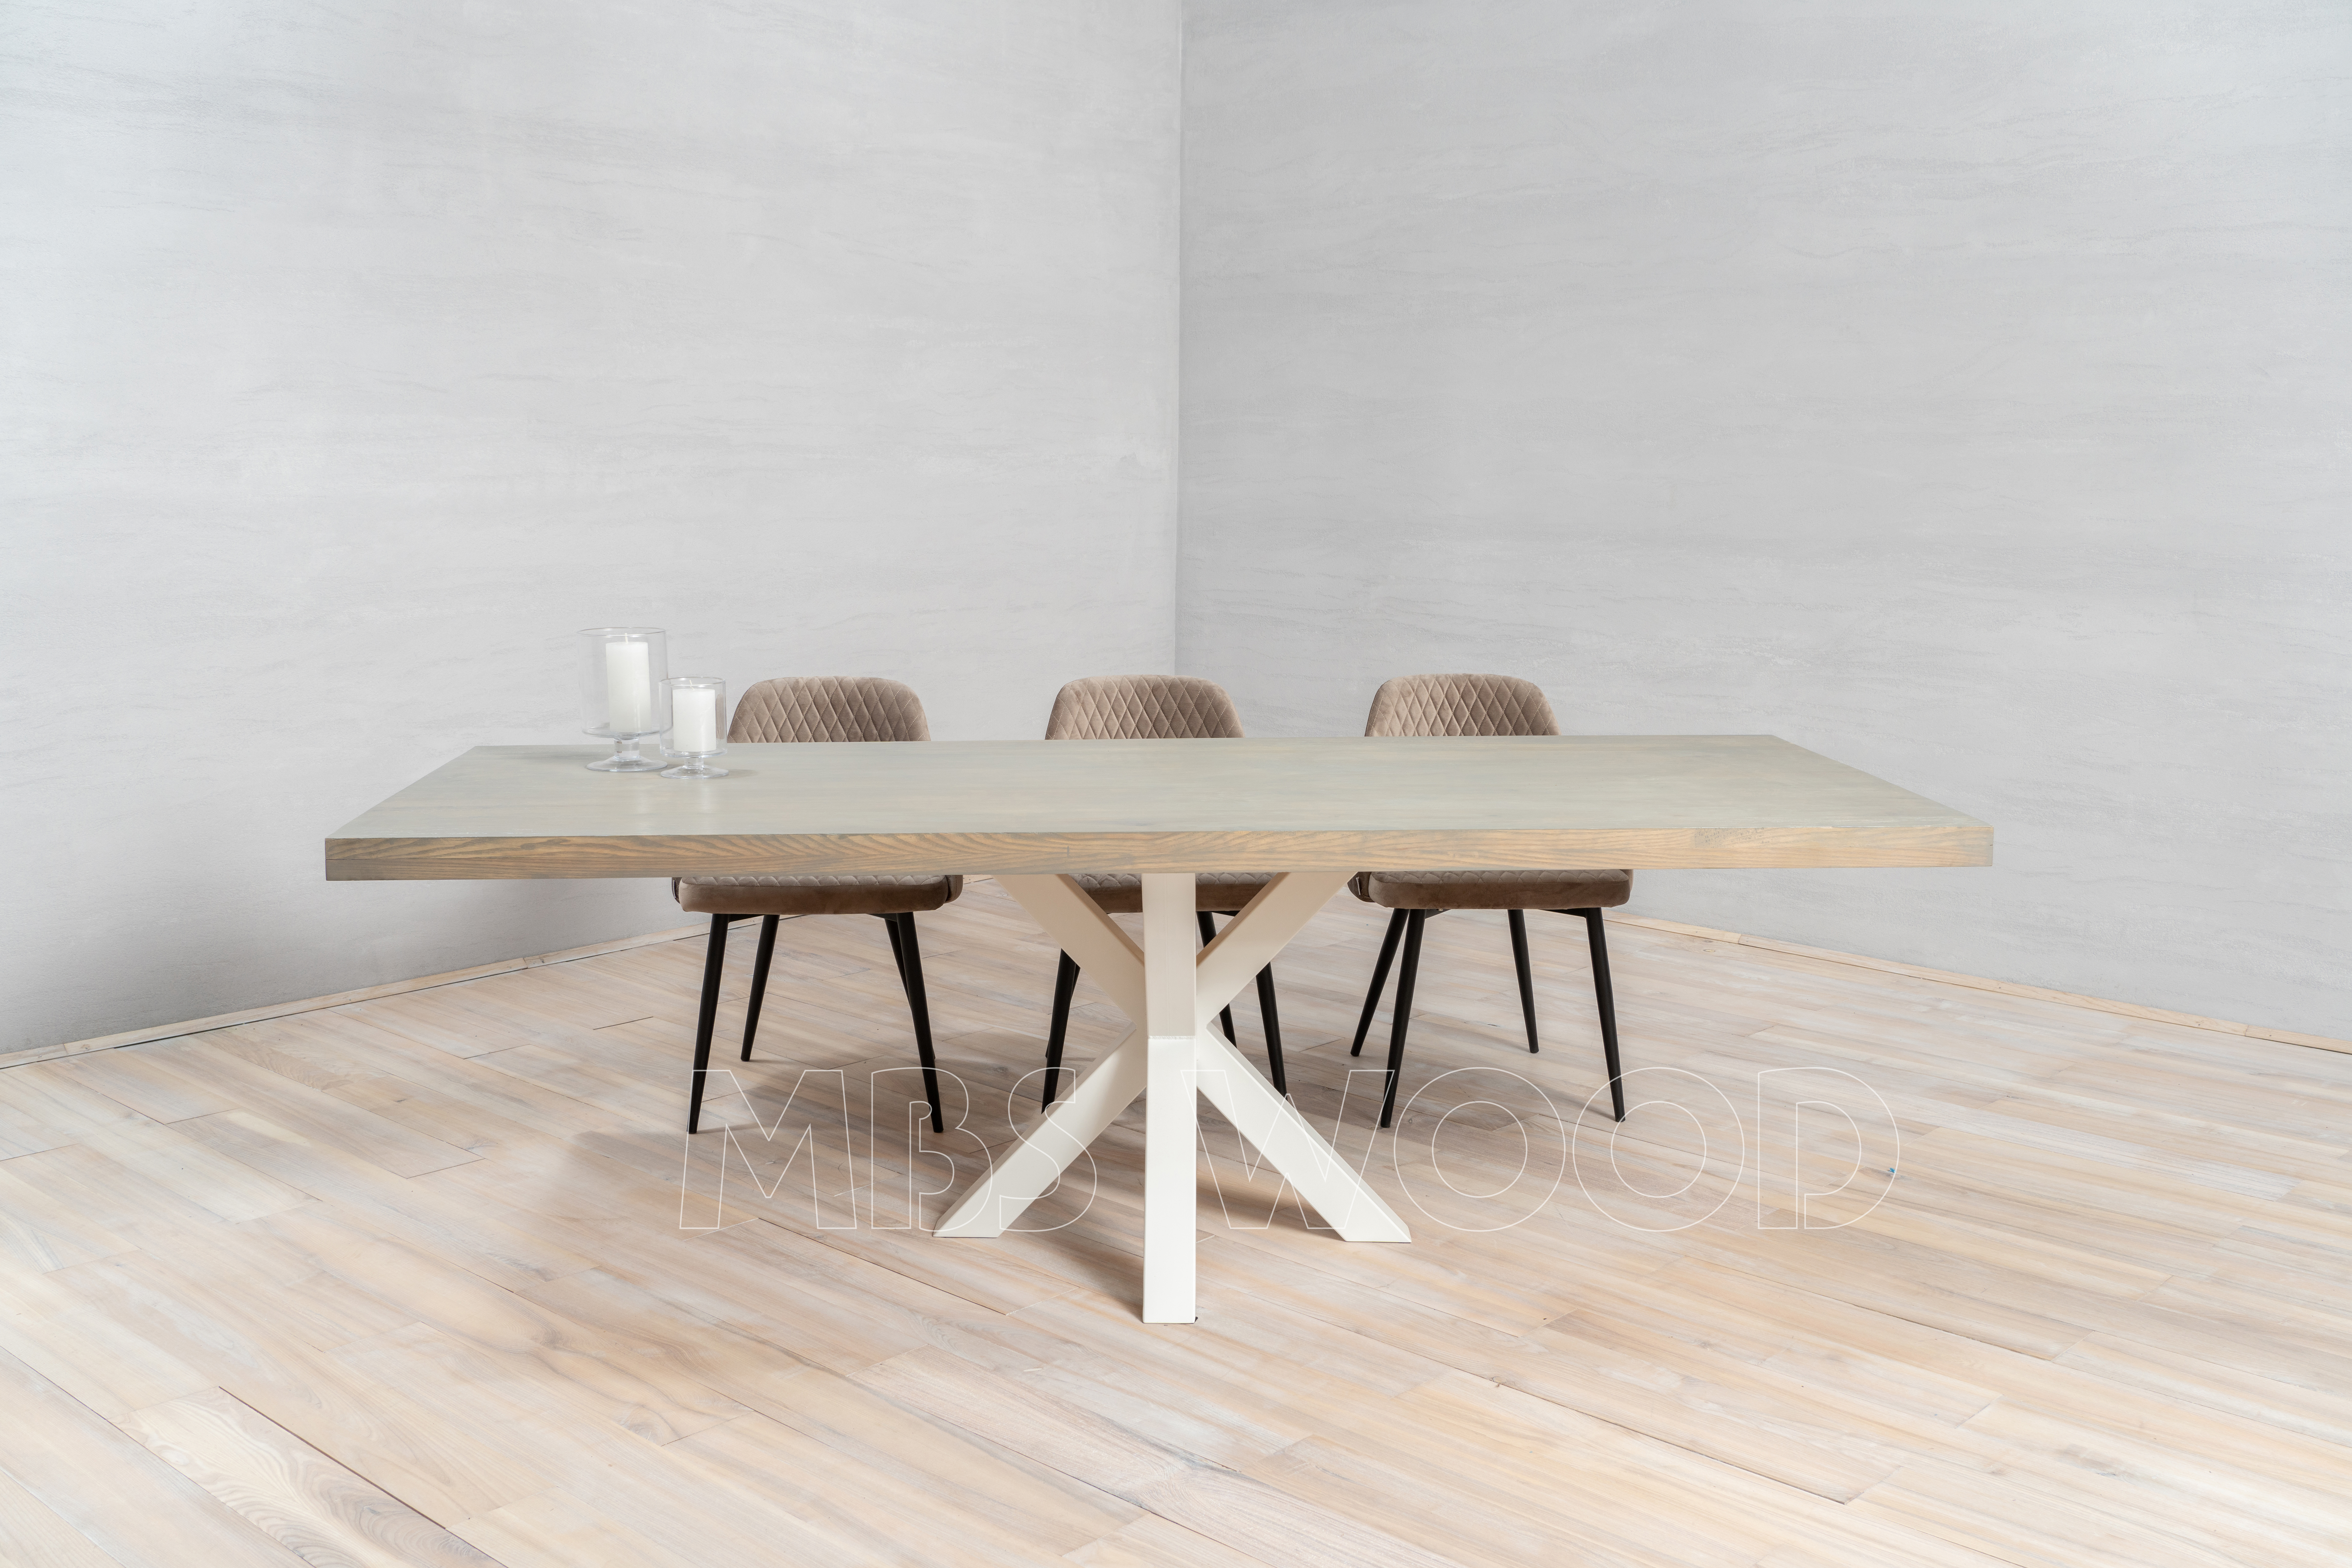 Big oak table with metal legs spider white color